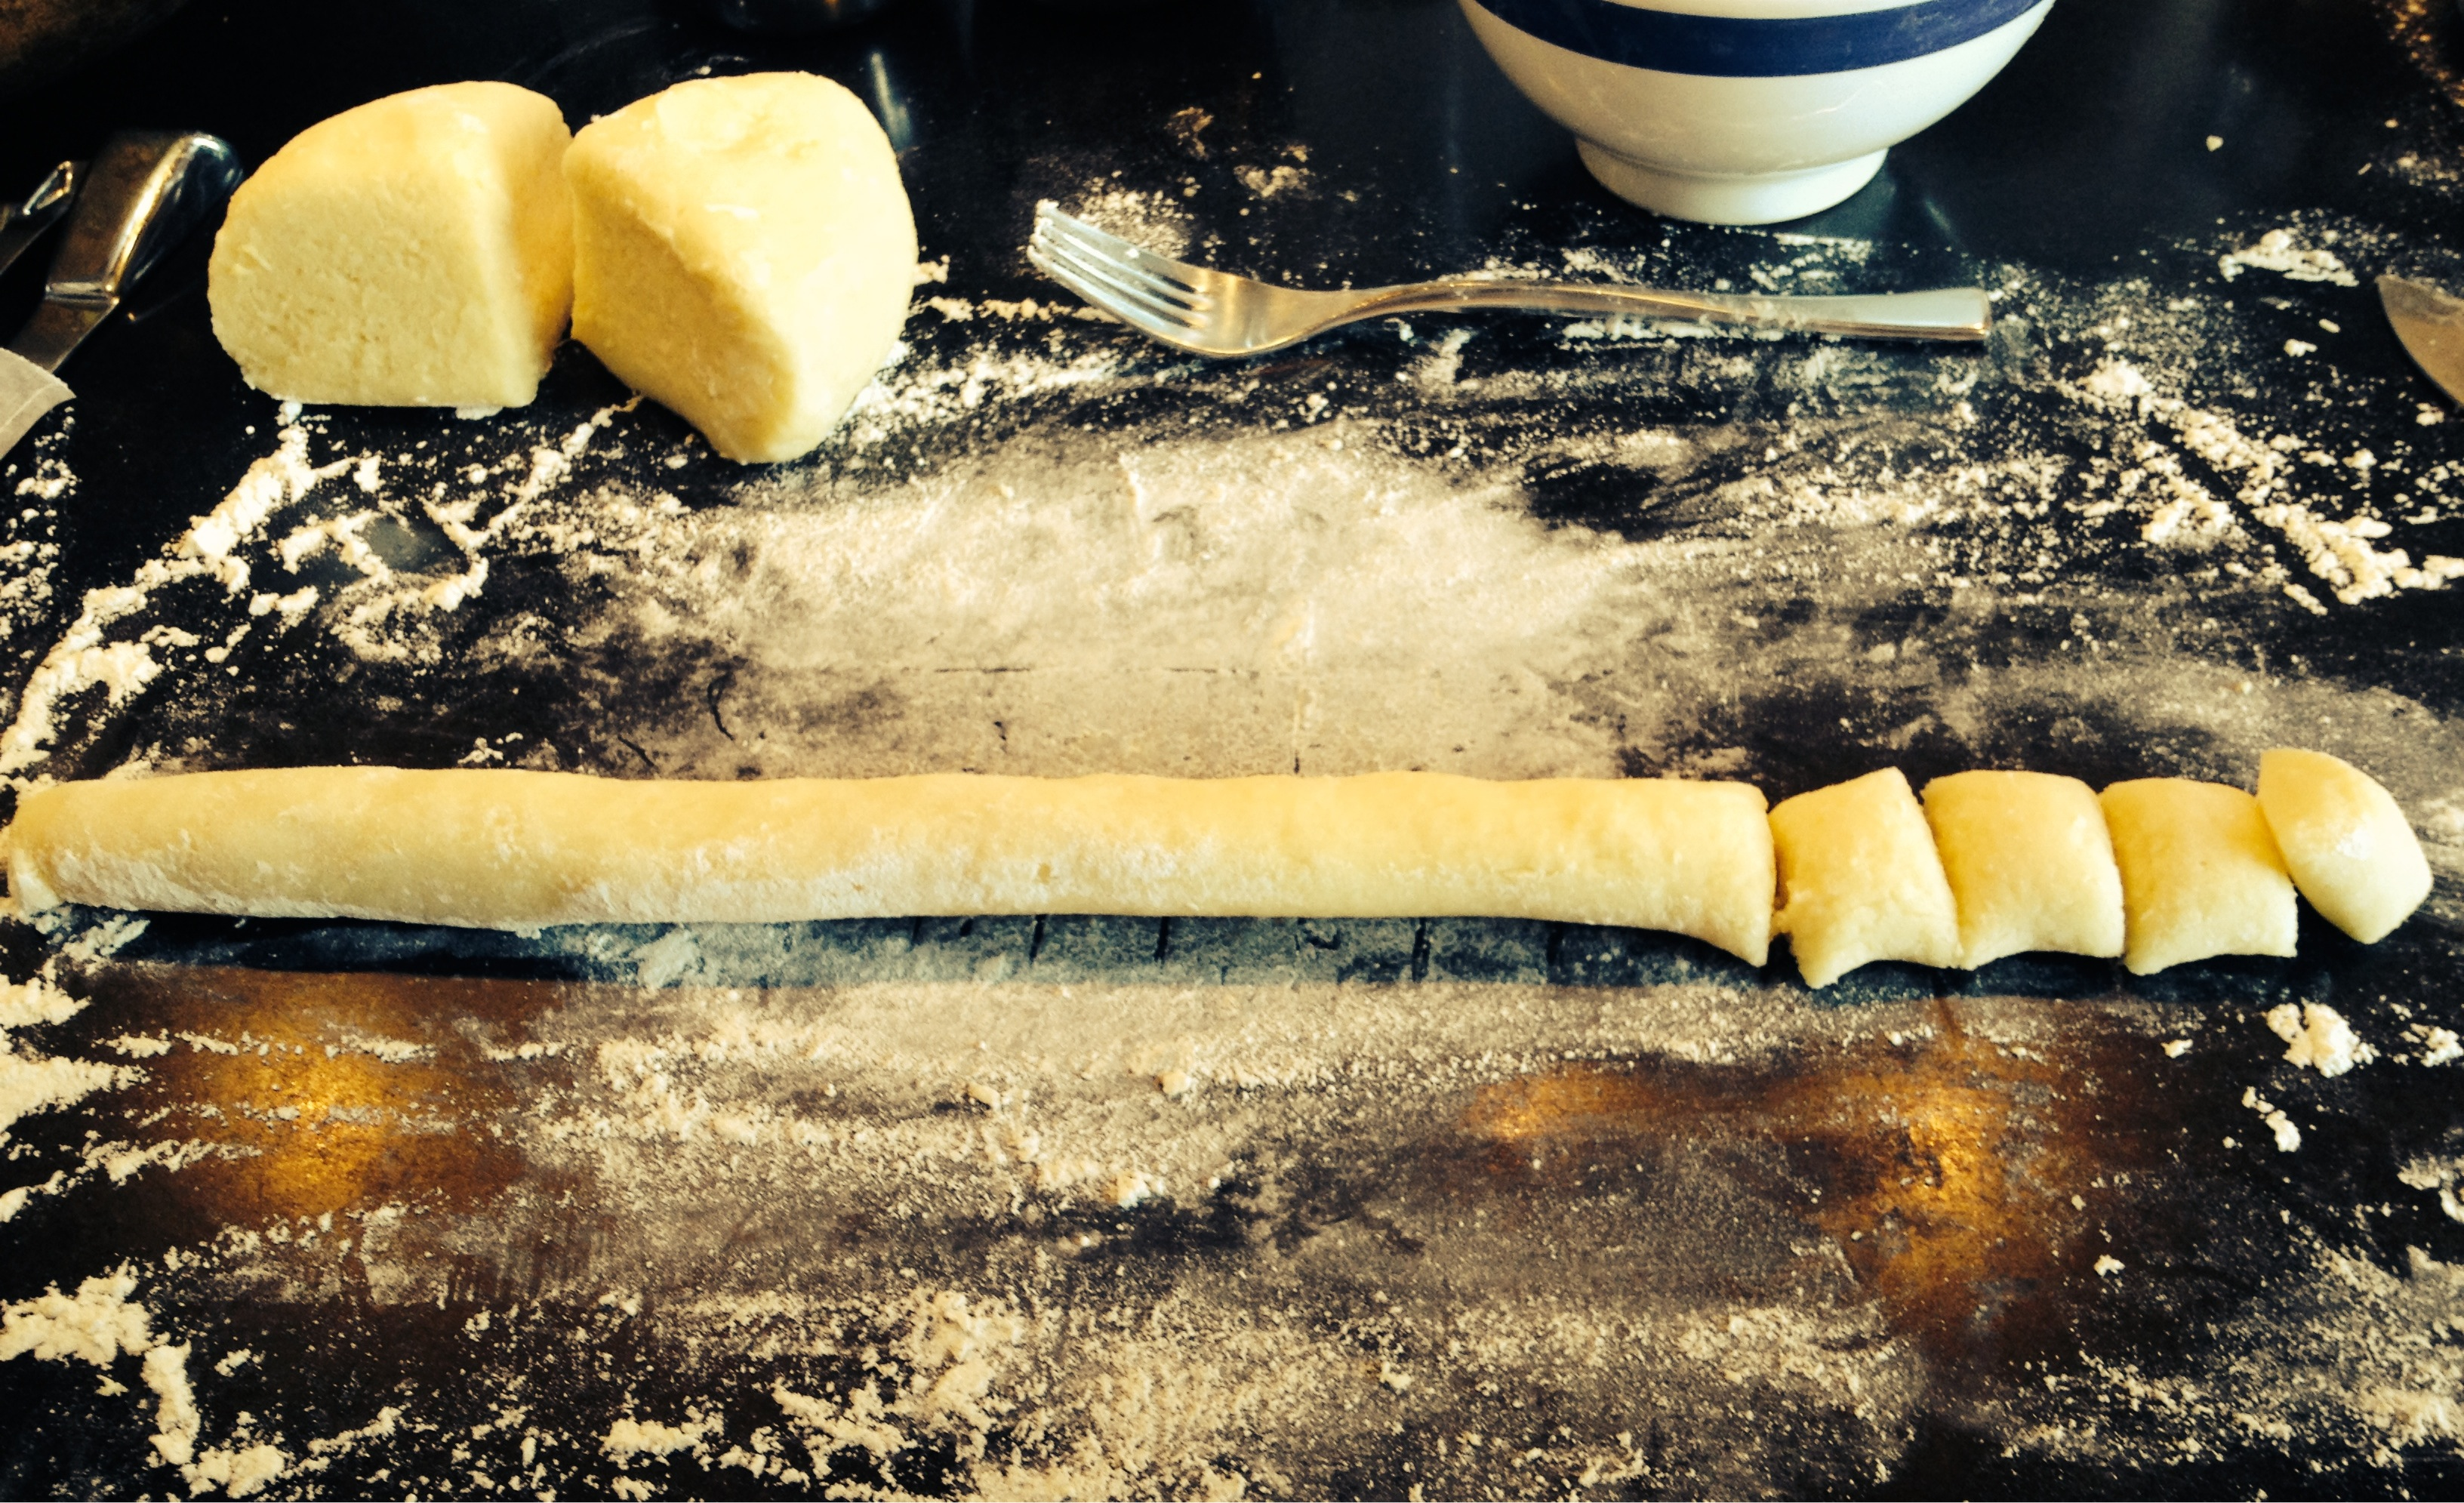 Homemade gnocchi being rolled out.